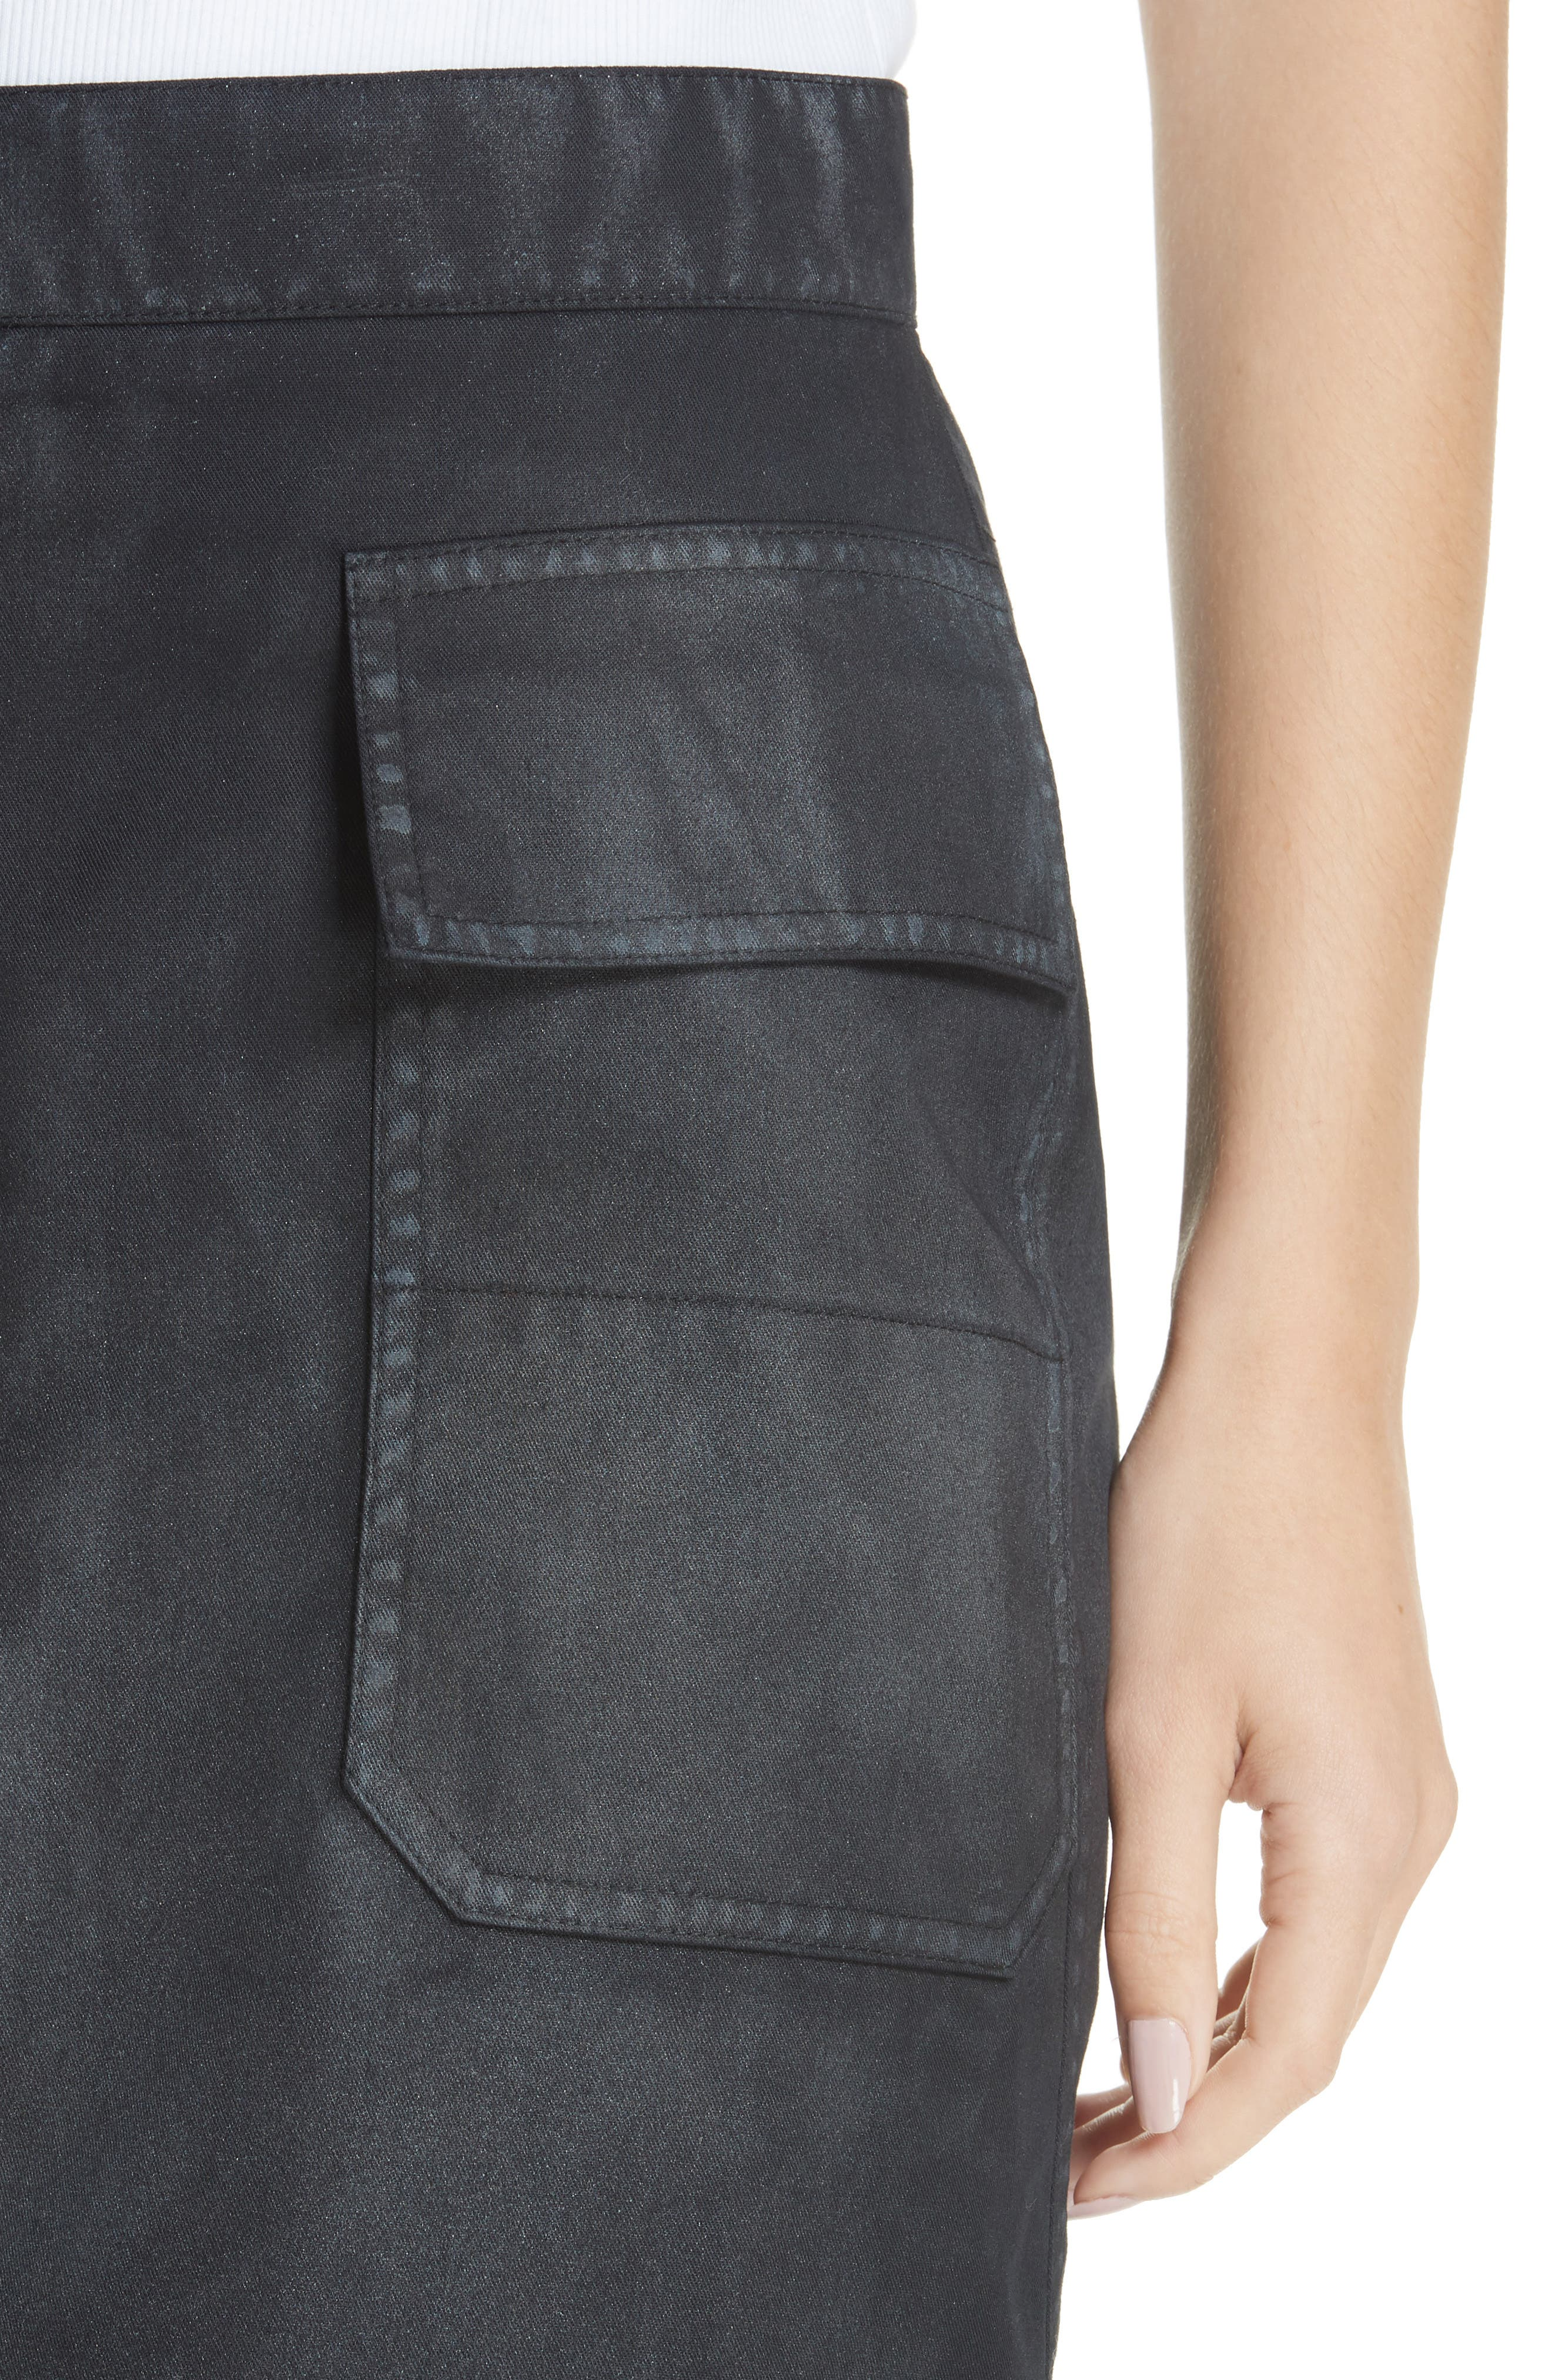 Fireman Skirt,                             Alternate thumbnail 4, color,                             BLACK